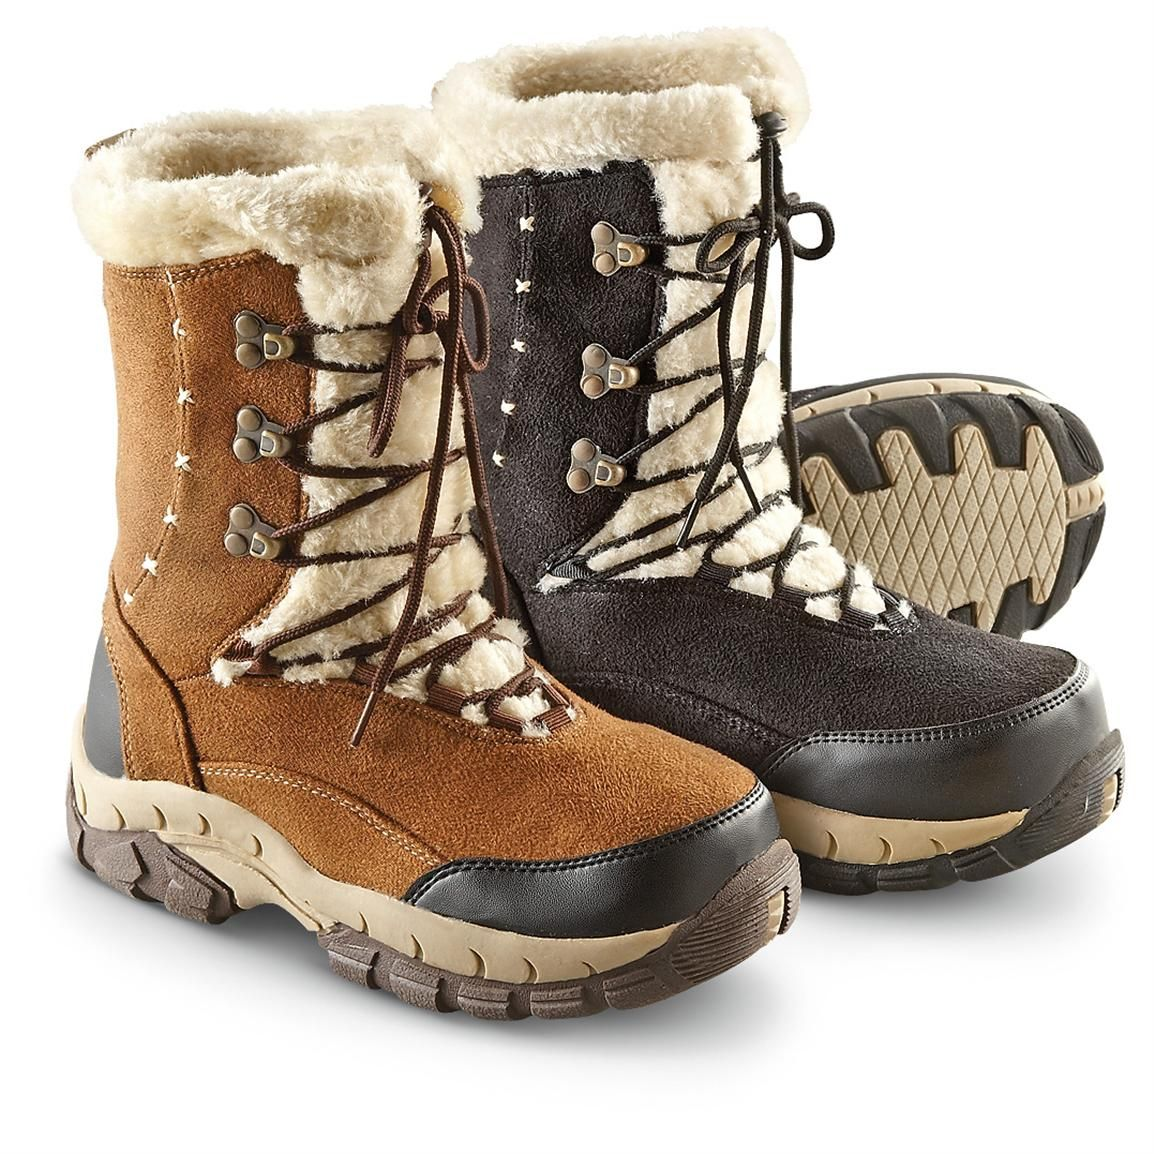 great winter boots!!